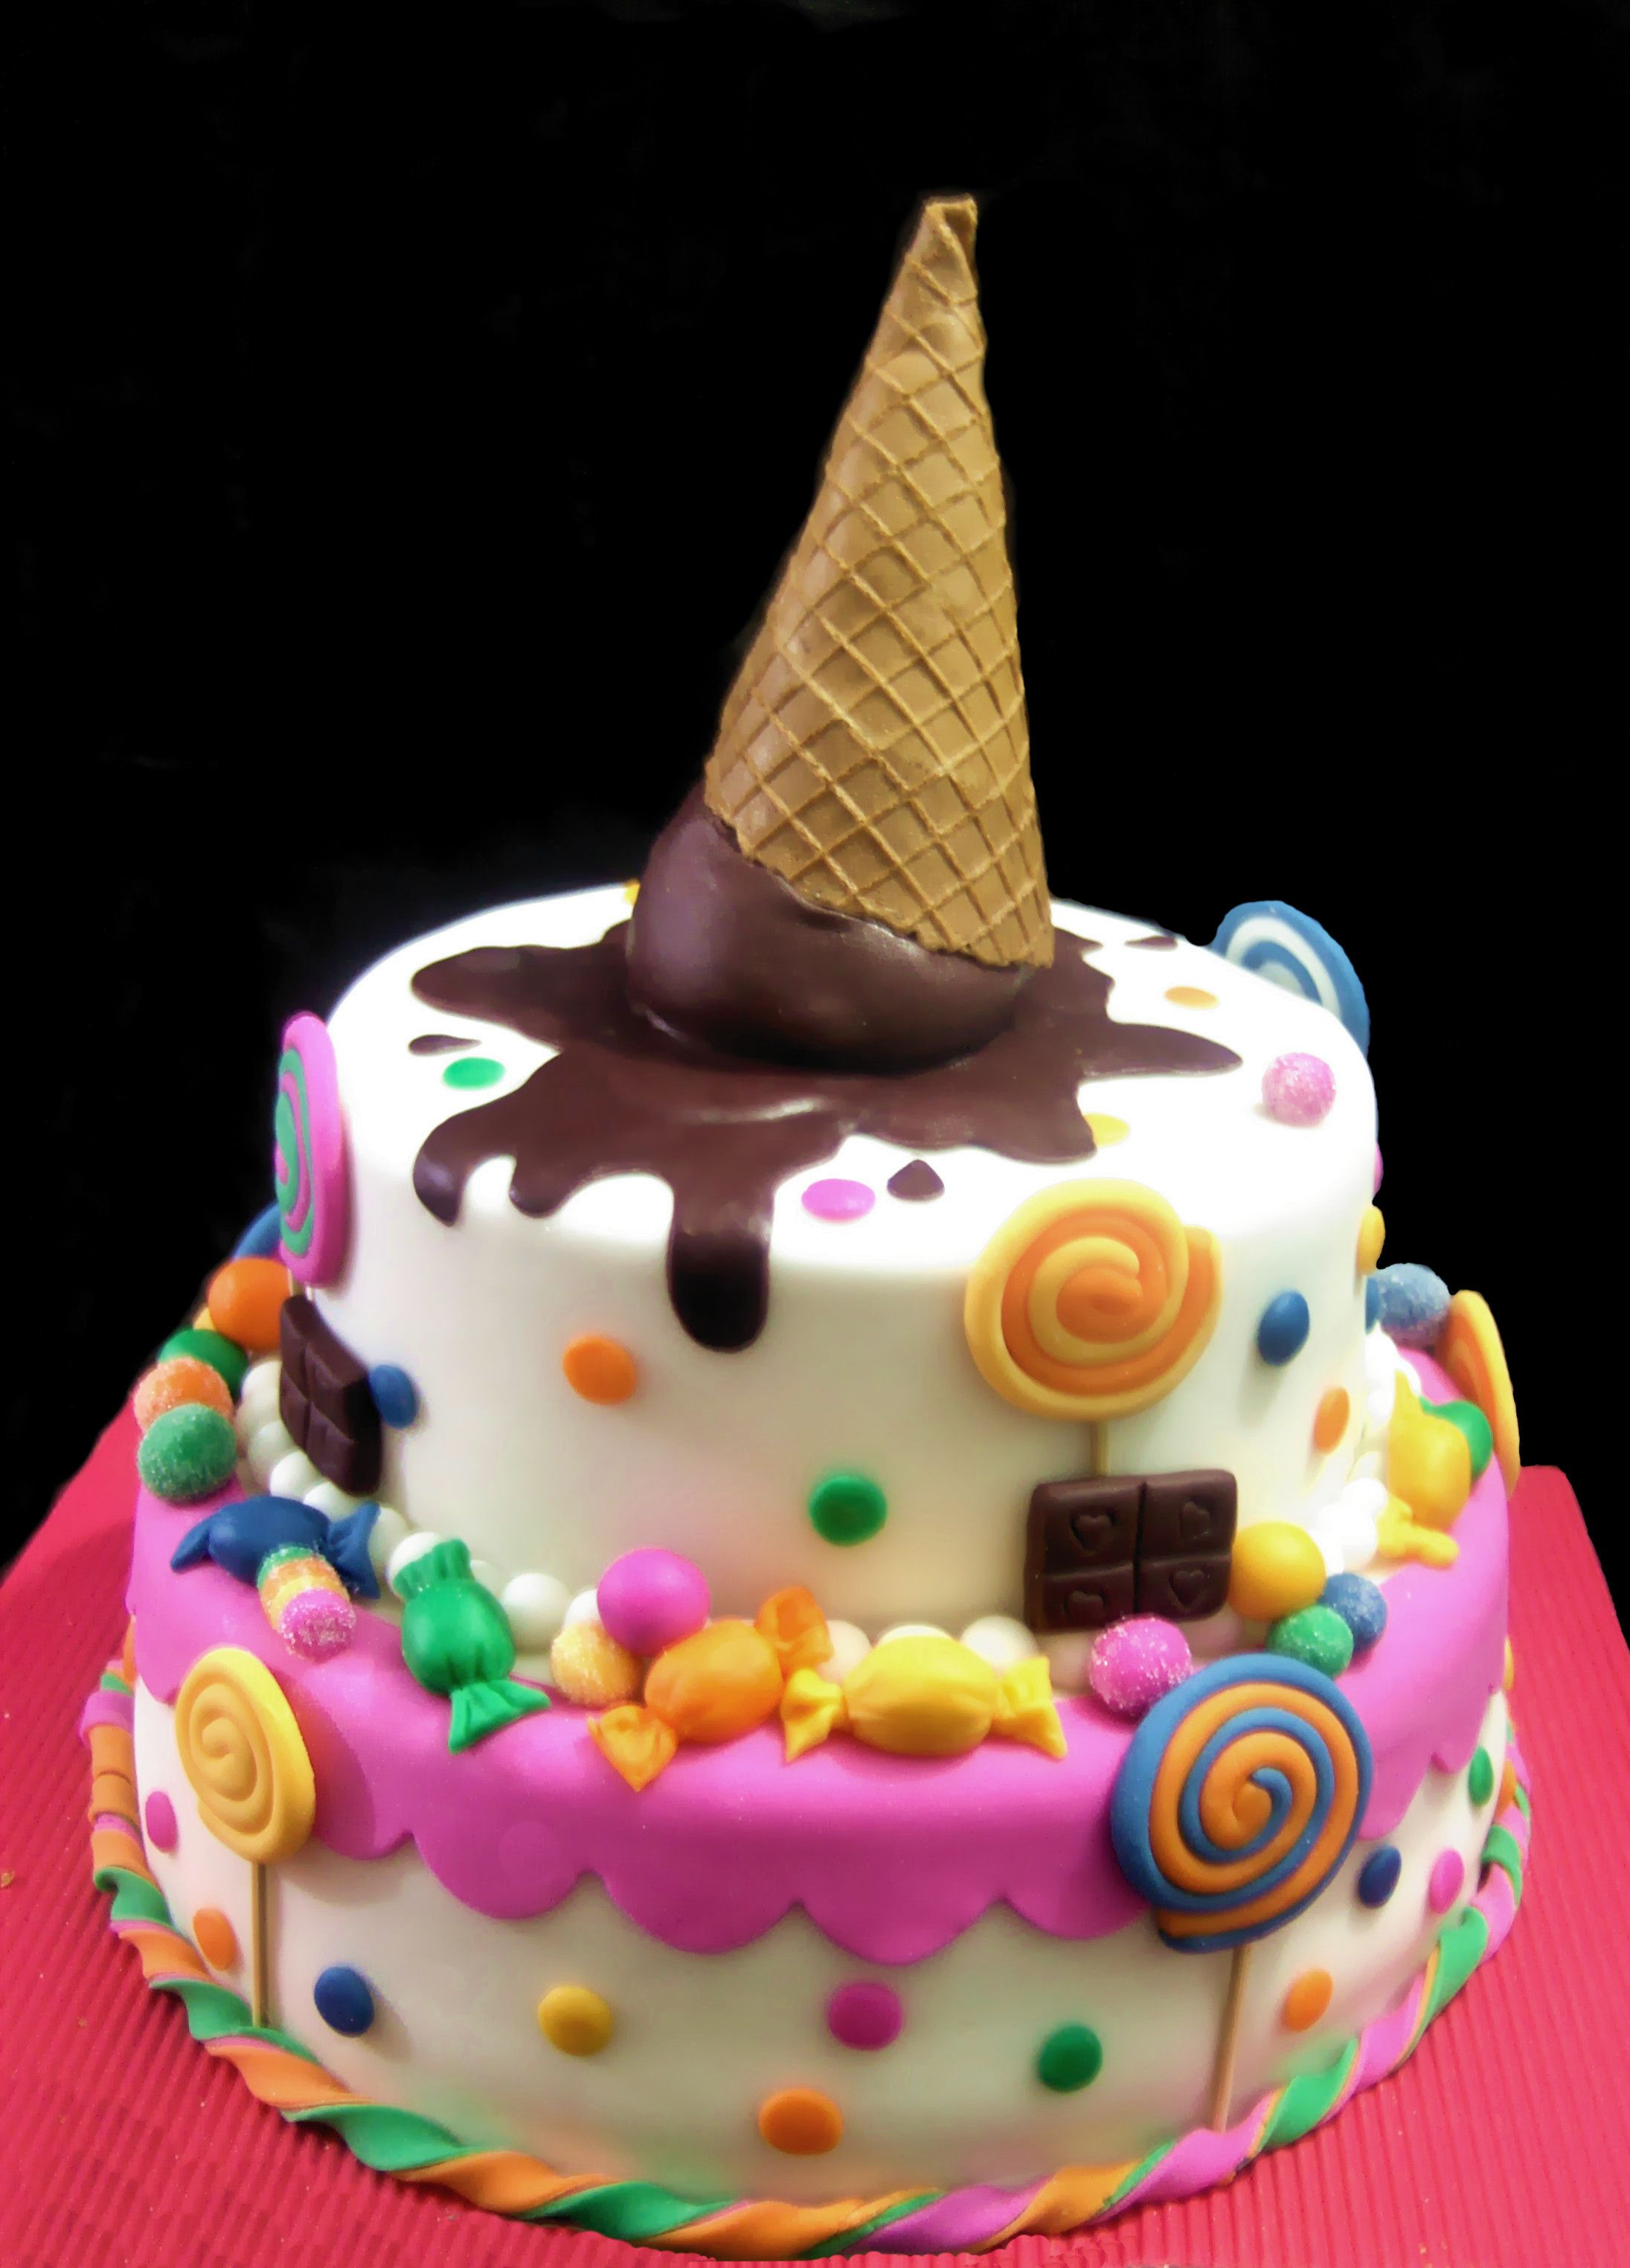 Super Cute For A Little Girls Cake Cakes Cute Birthday Cakes